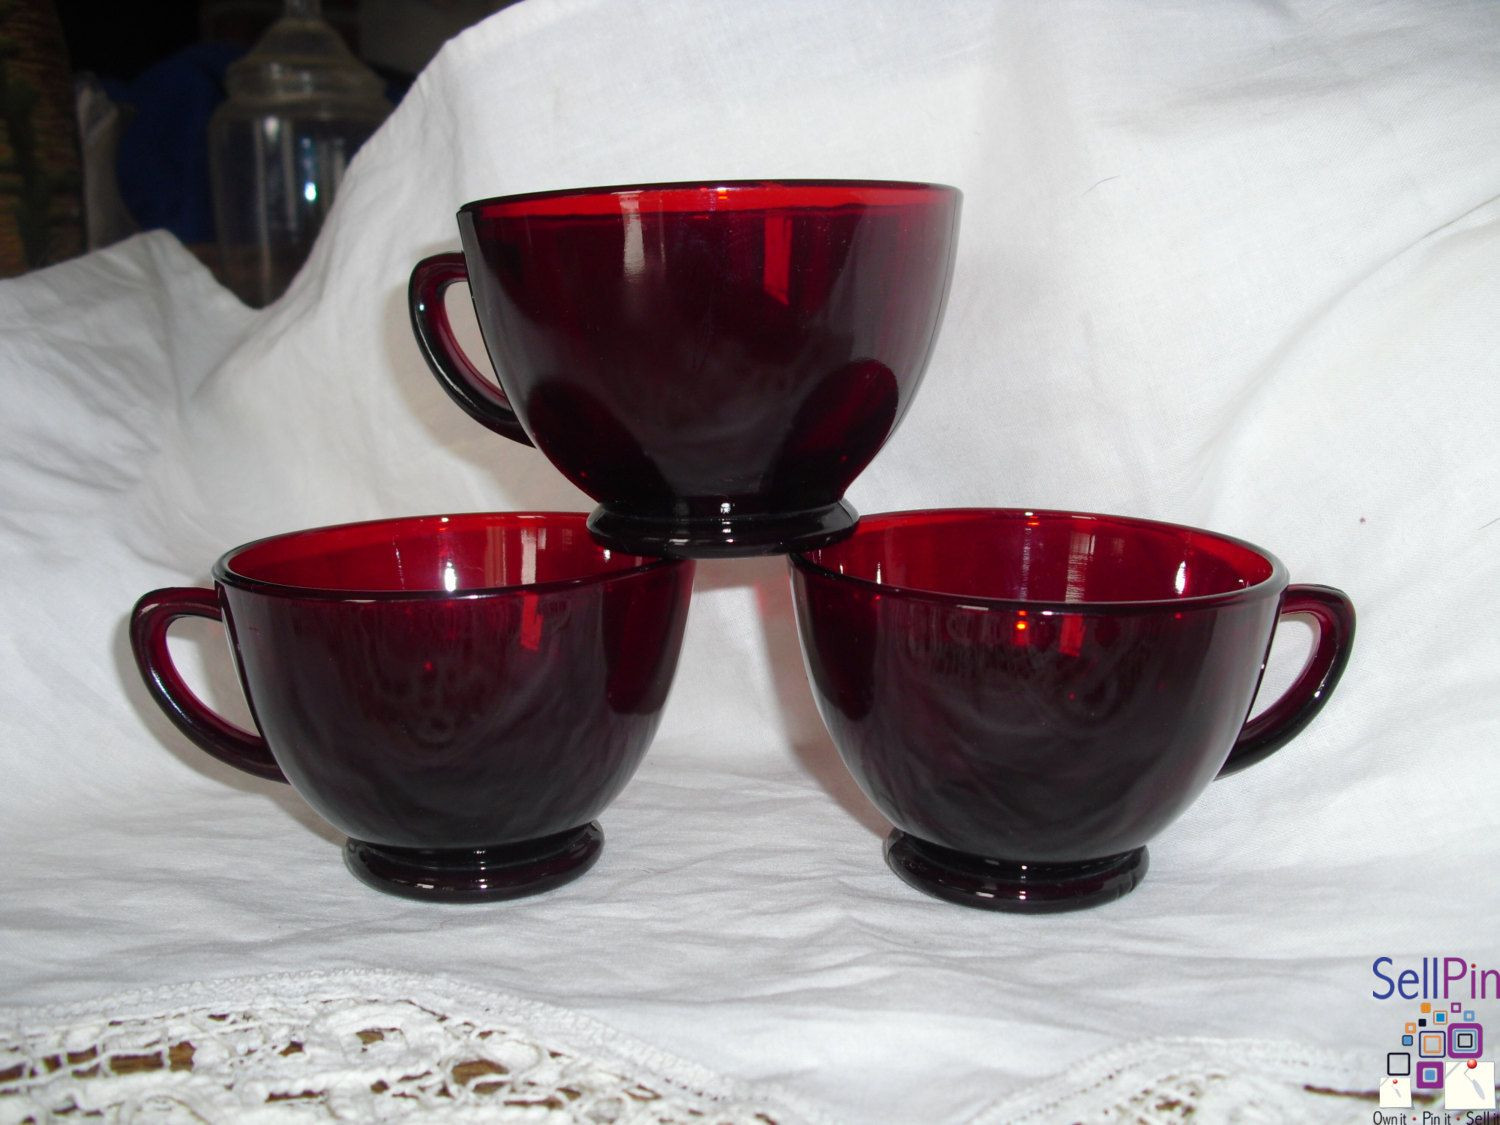 28 Unique Anchor Hocking Vases Prices 2021 free download anchor hocking vases prices of sellpin com pins for sale by owner a great set of 3 vintage royal intended for sellpin com pins for sale by owner a great set of 3 vintage royal ruby red depre